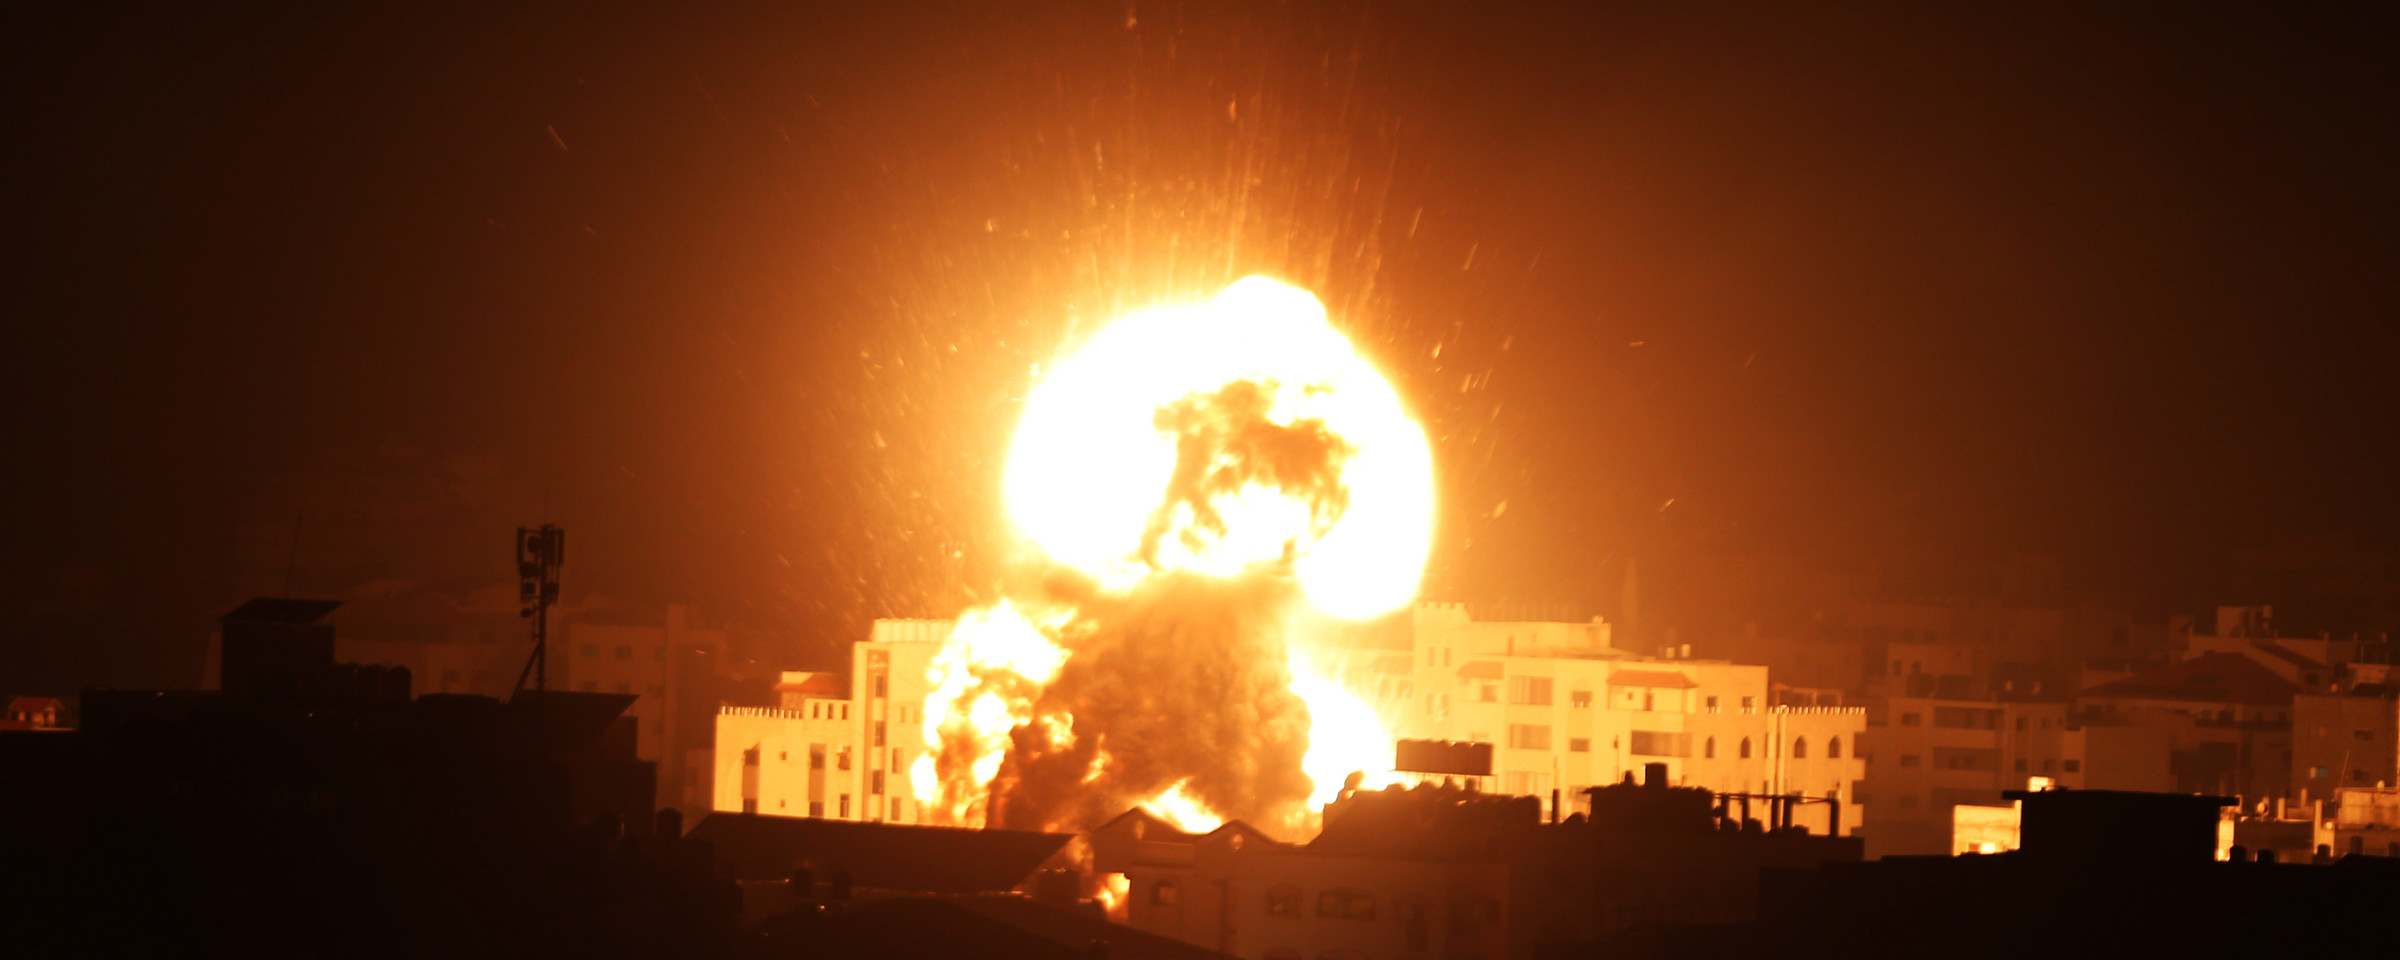 A massive fireball rises over high-rise buildings against a night sky